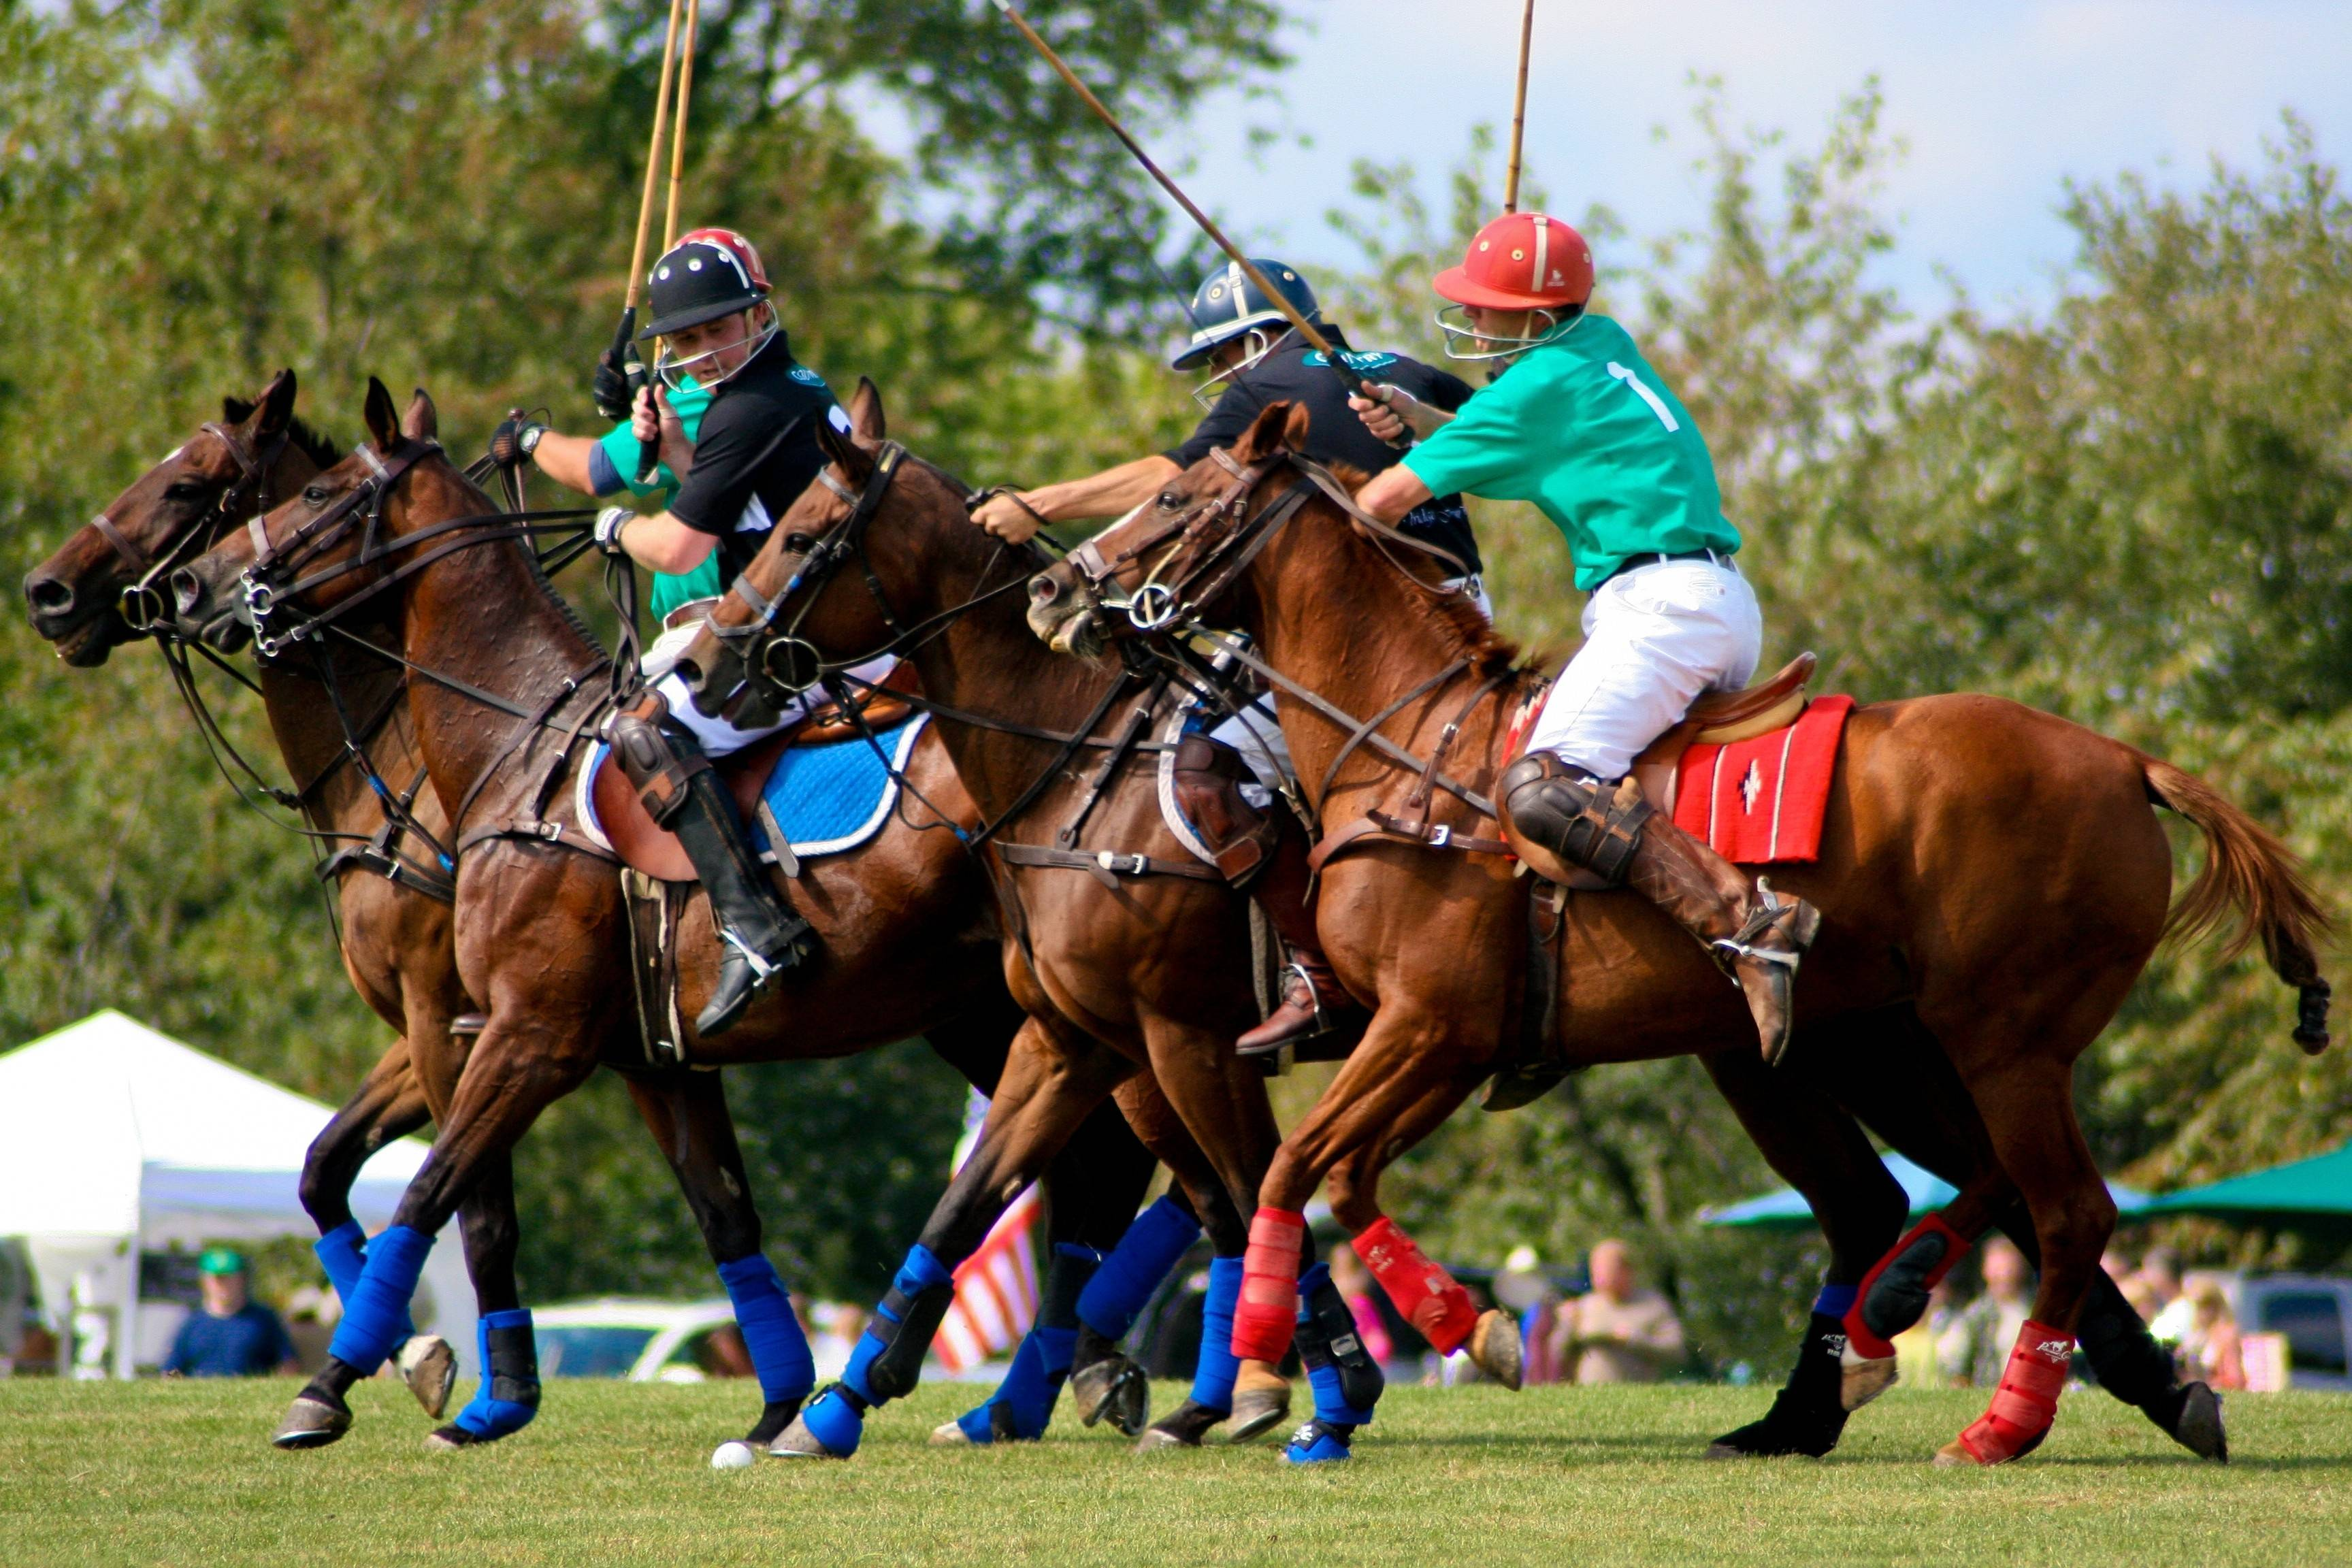 Barrington Hills polo competition will continue, after all